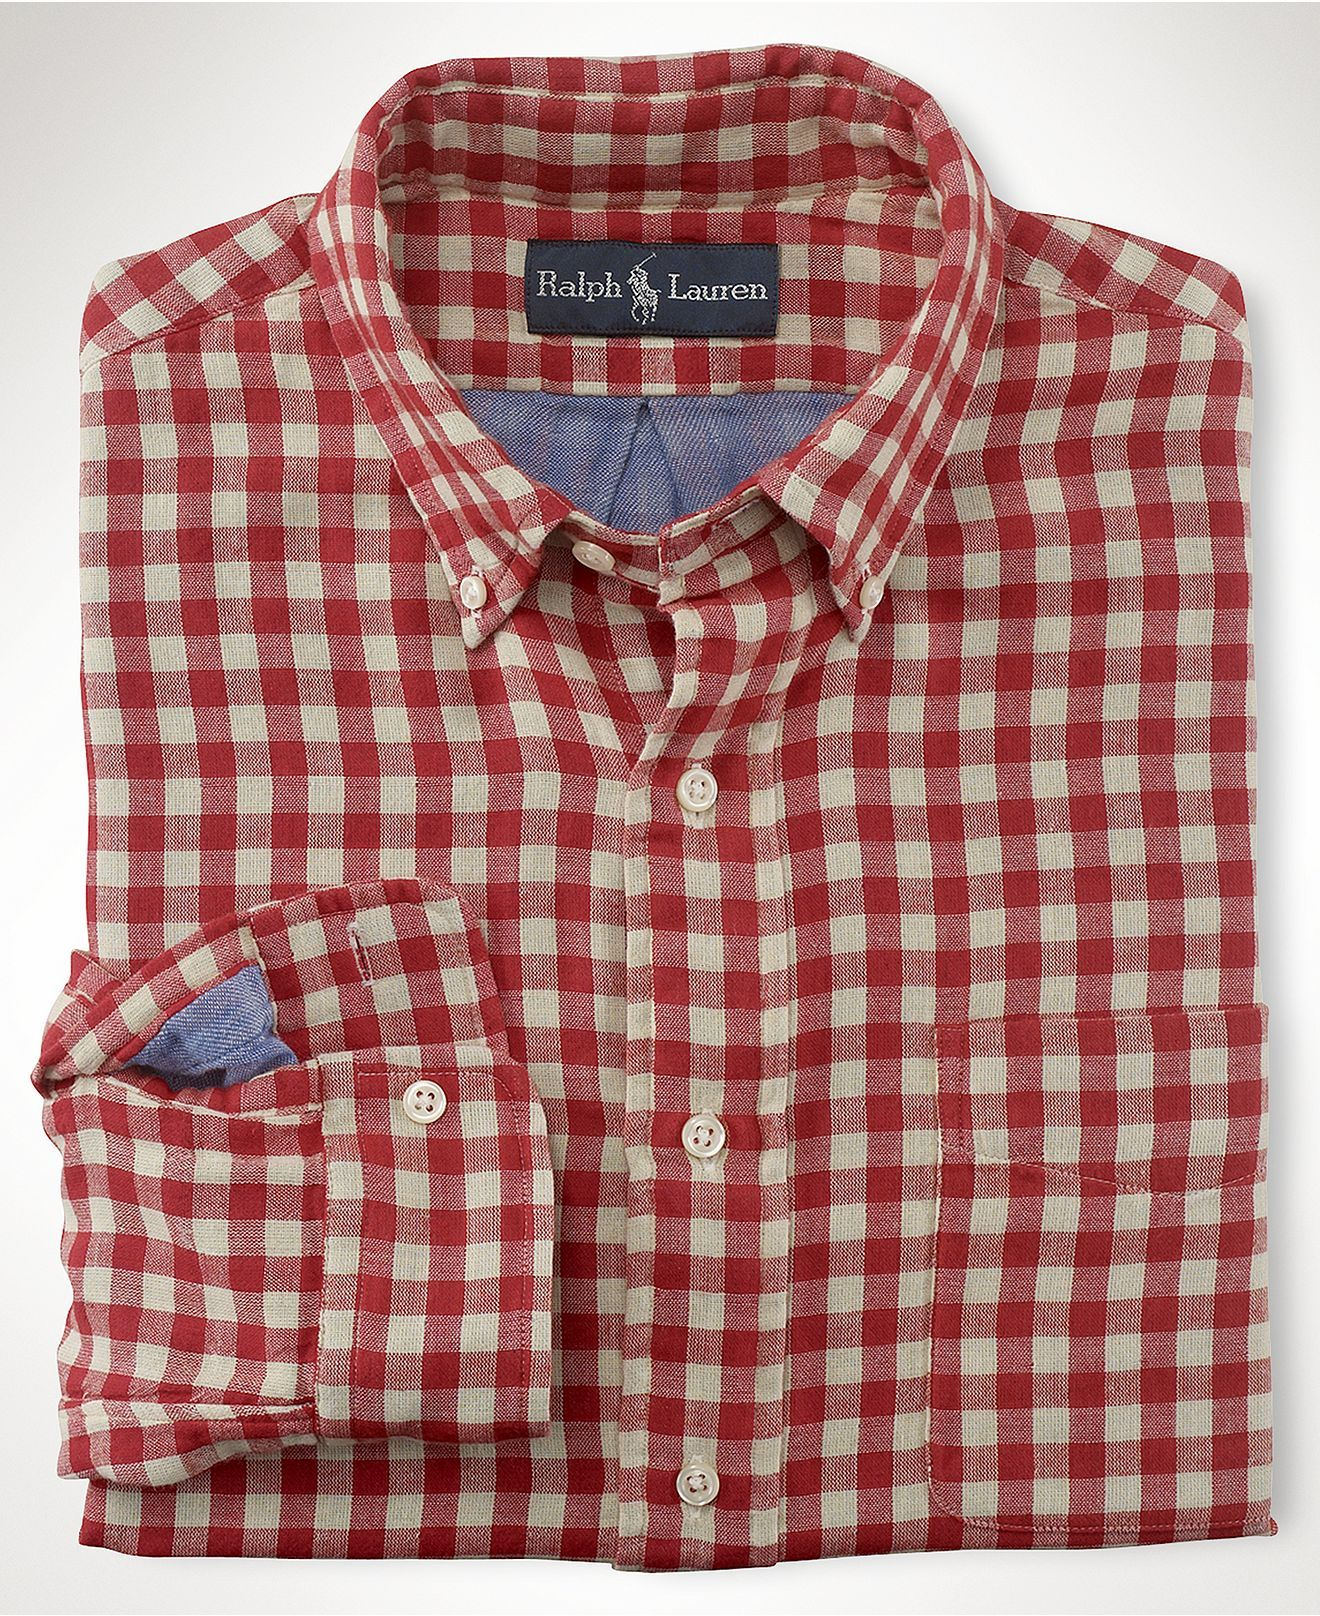 3136c3b684b Polo Ralph Lauren Shirt, Long Sleeved Custom Fit Gingham Shirt - Shirts -  Men - Macys